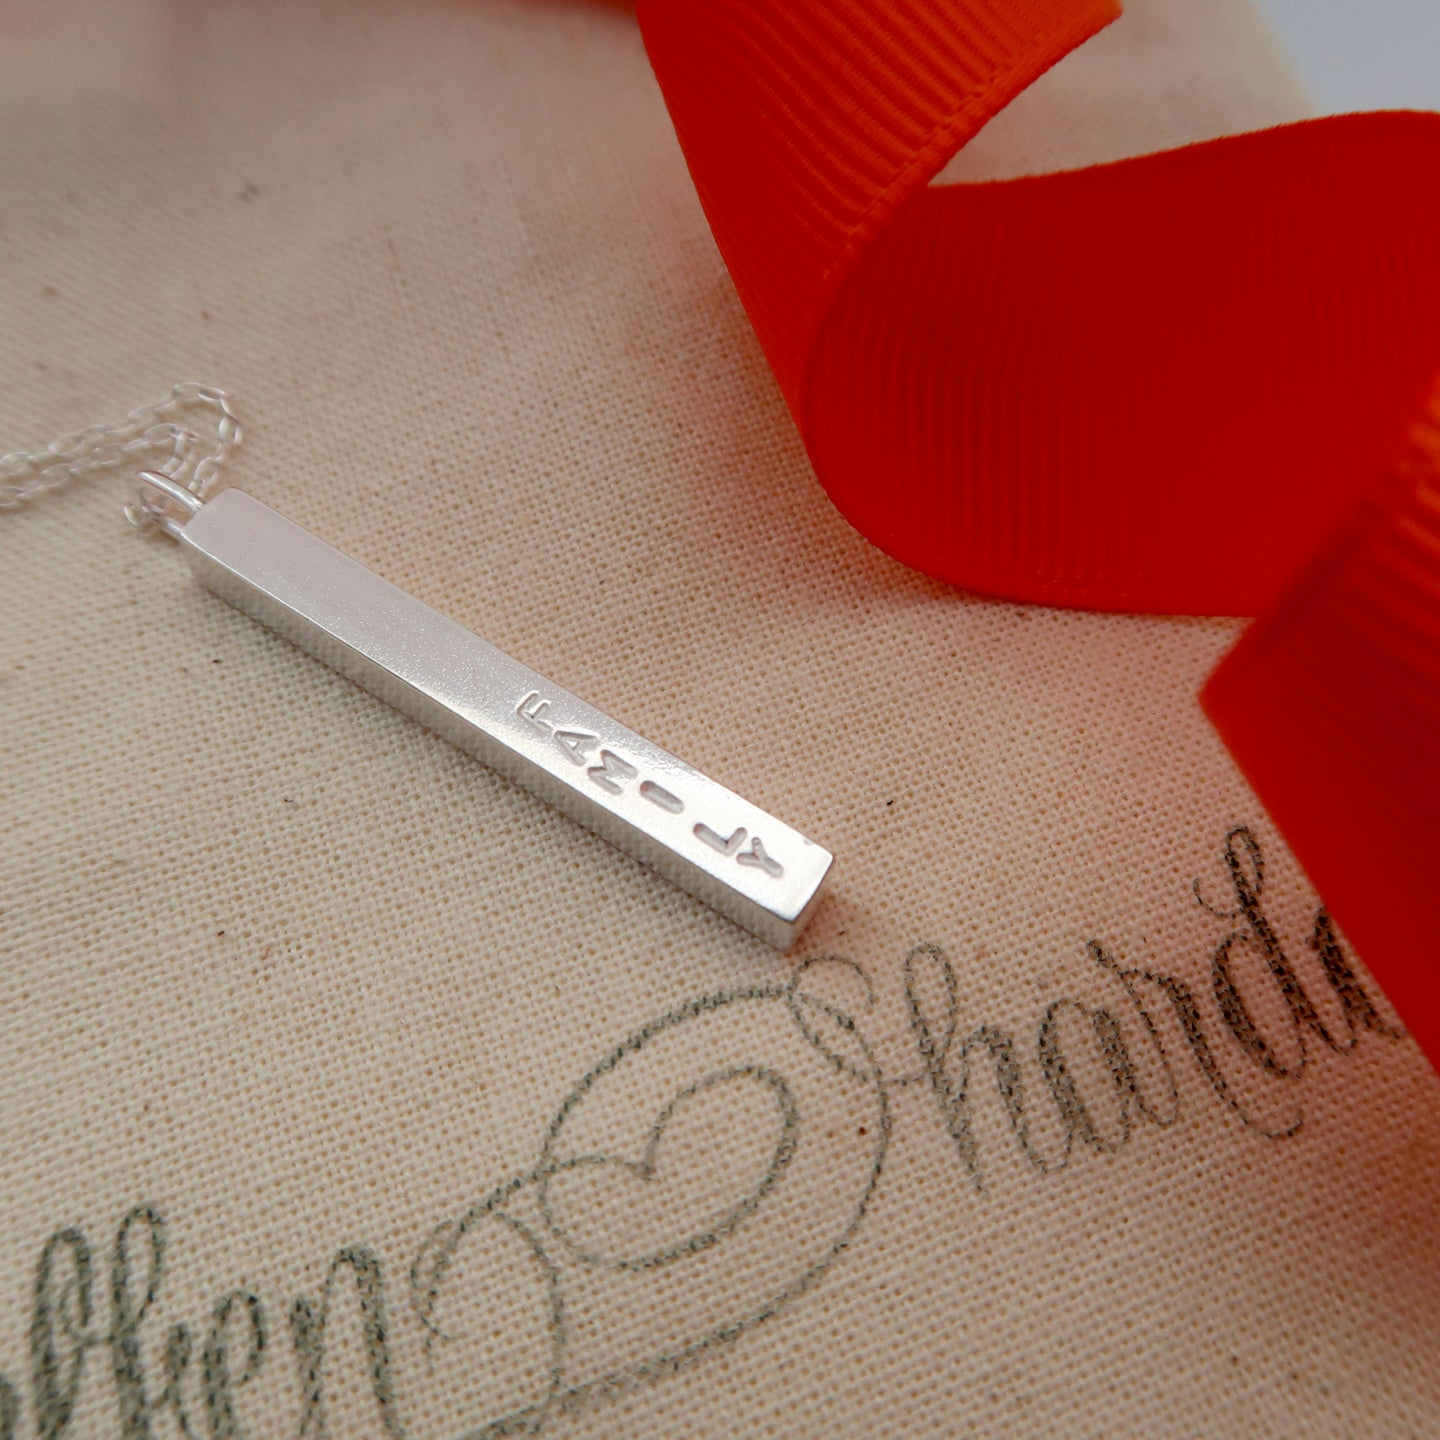 personalised silver bar necklace wales uk elfen hardd